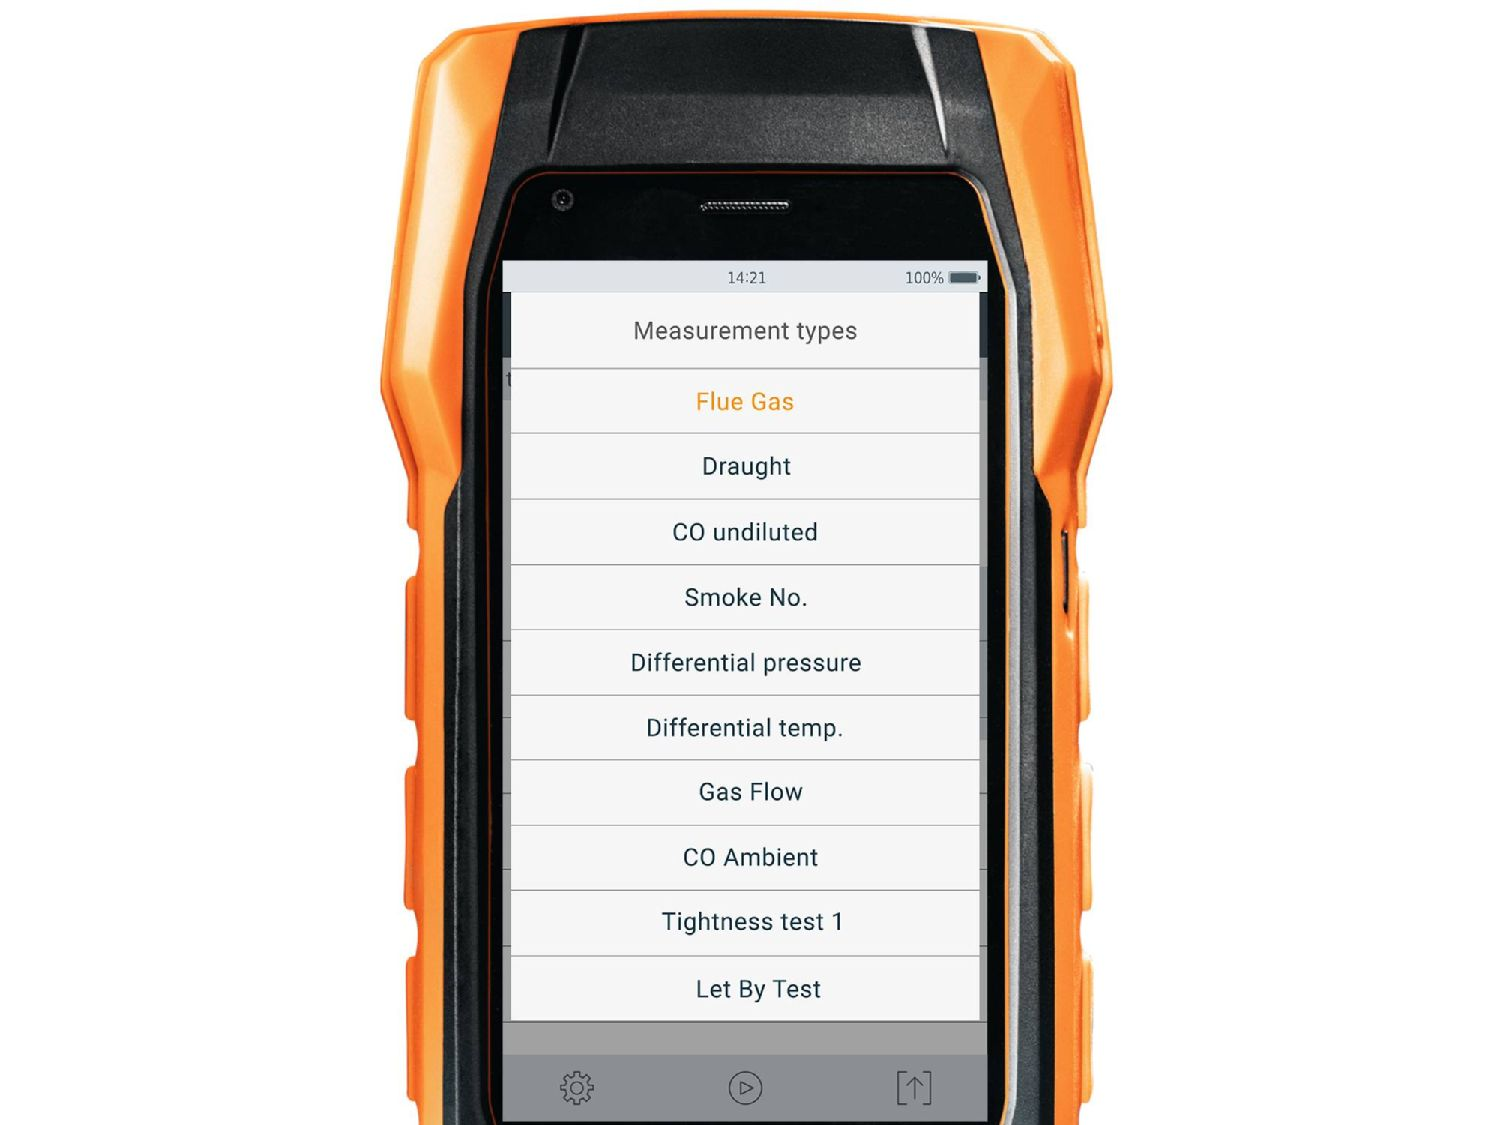 testo 300 measurement types